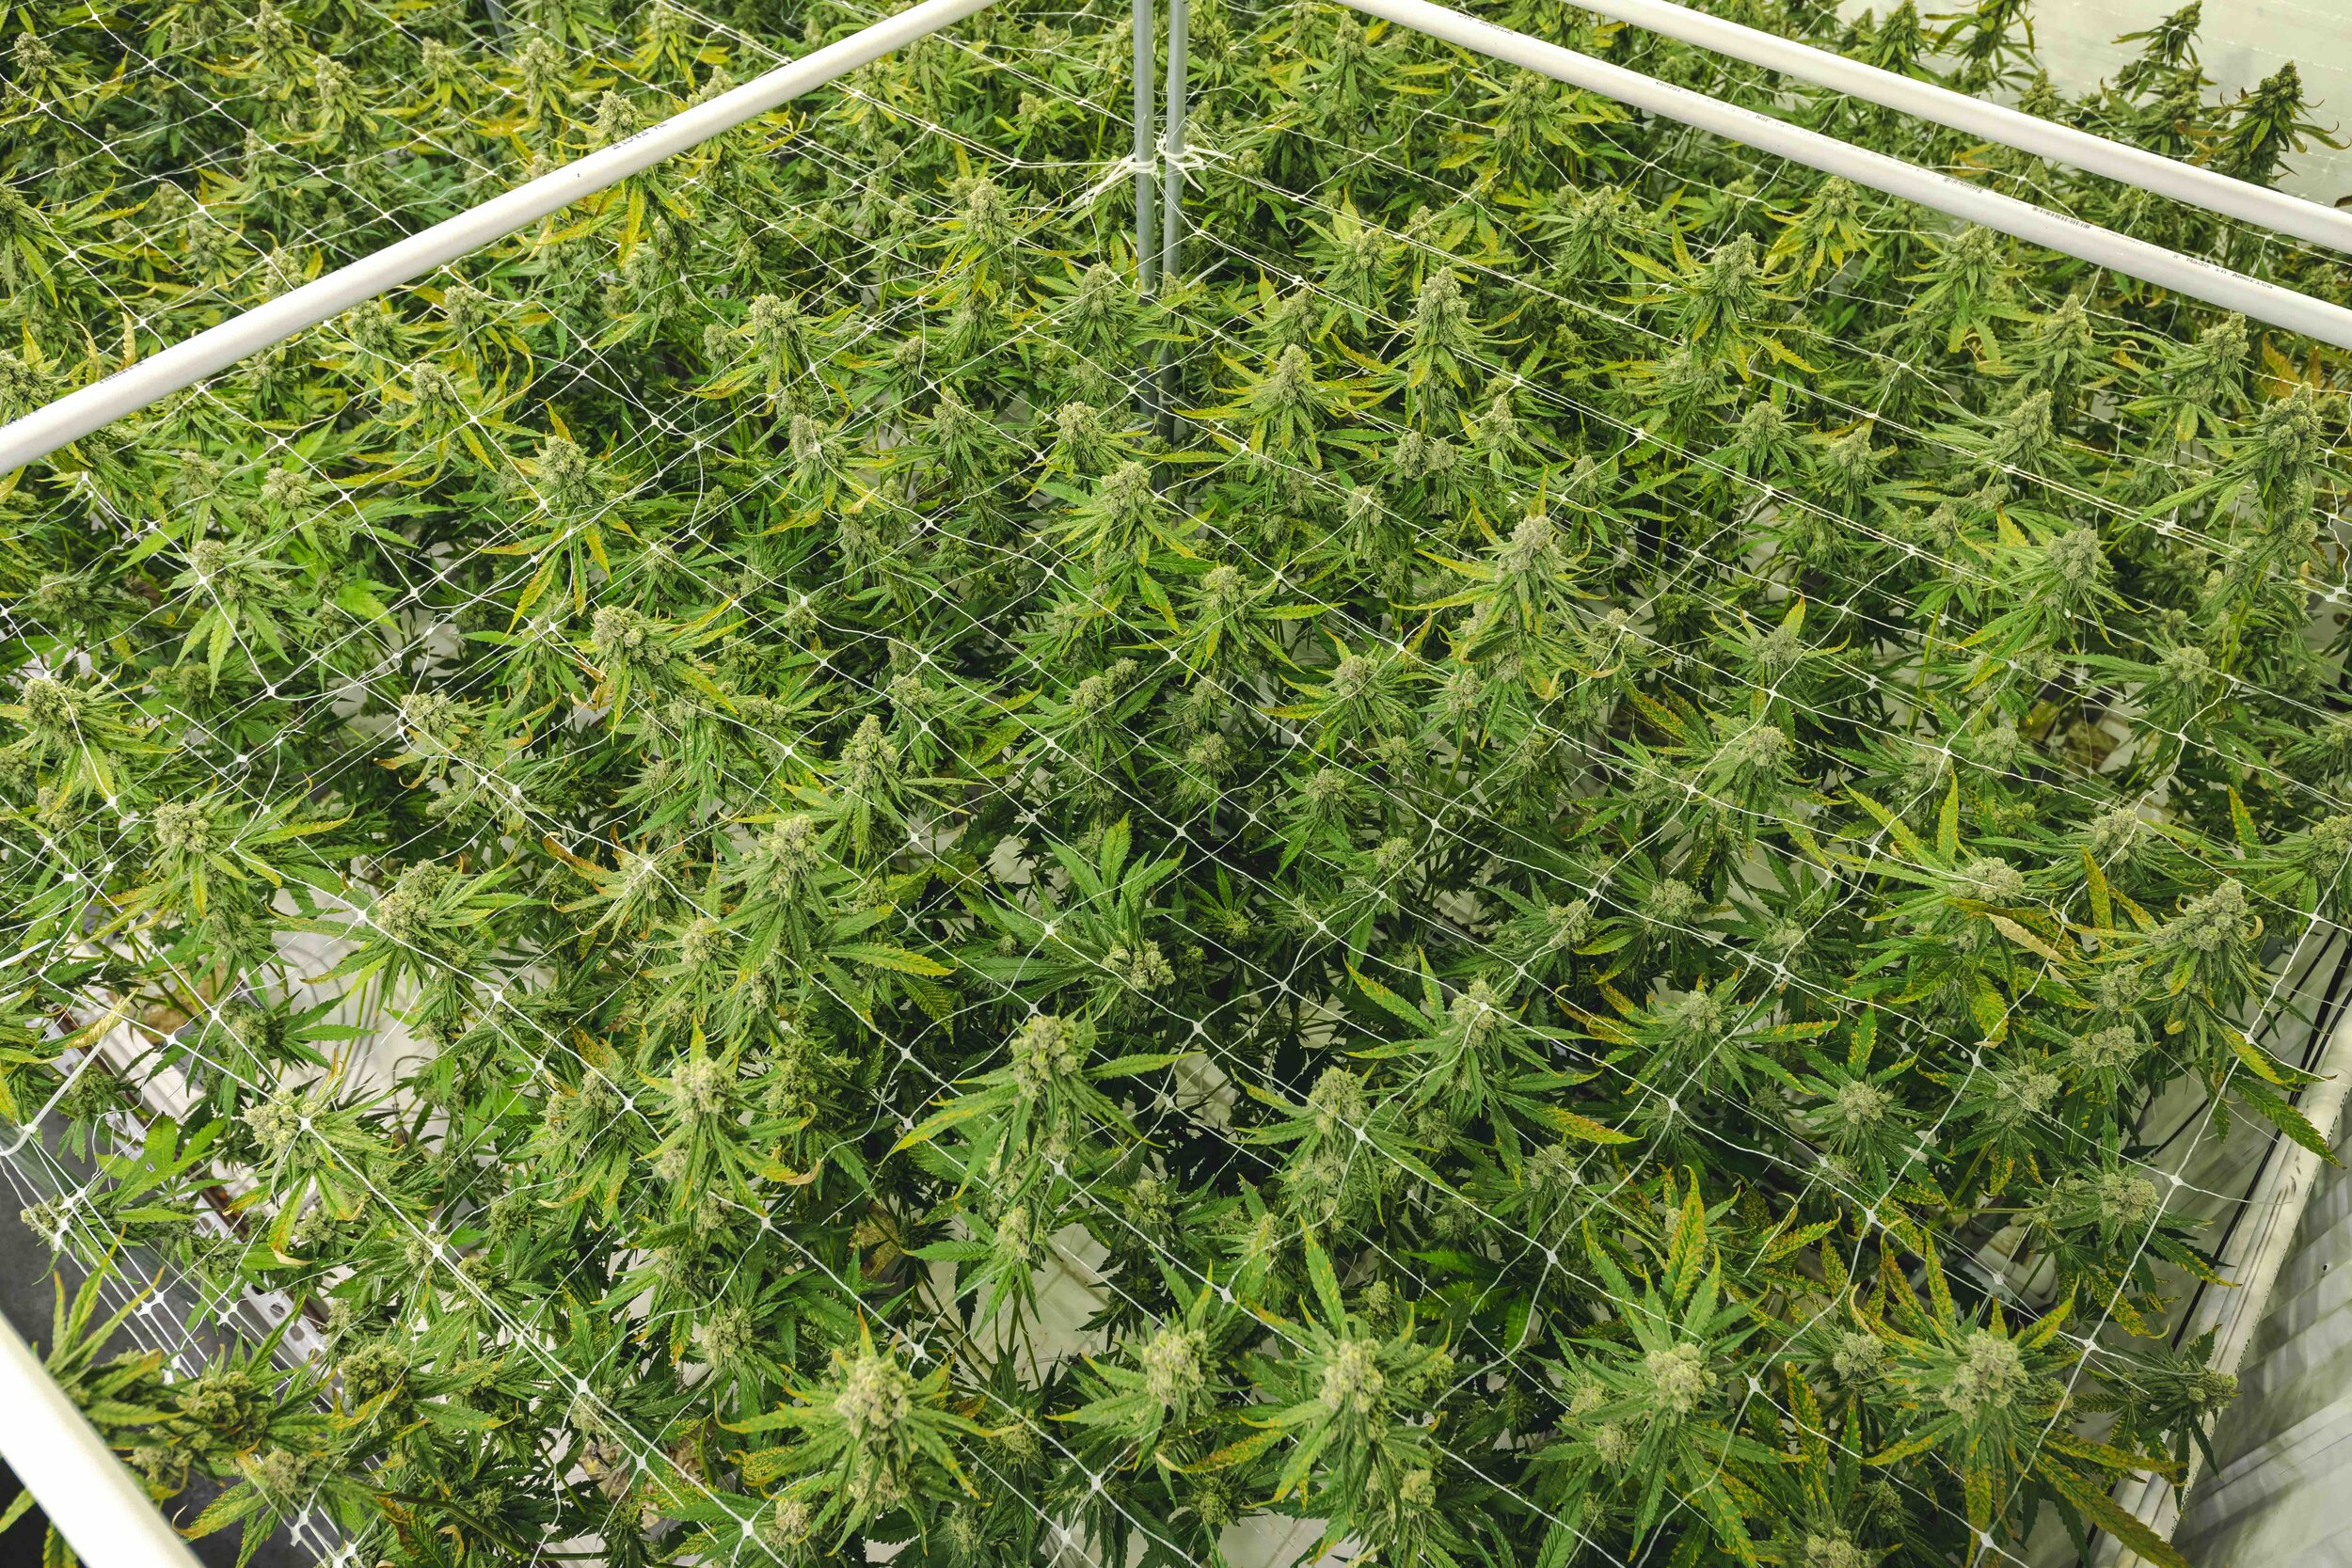 Texture_Background_of_Cannabis_Plant_Canopy_with_Vibrant_Green_Color.jpeg